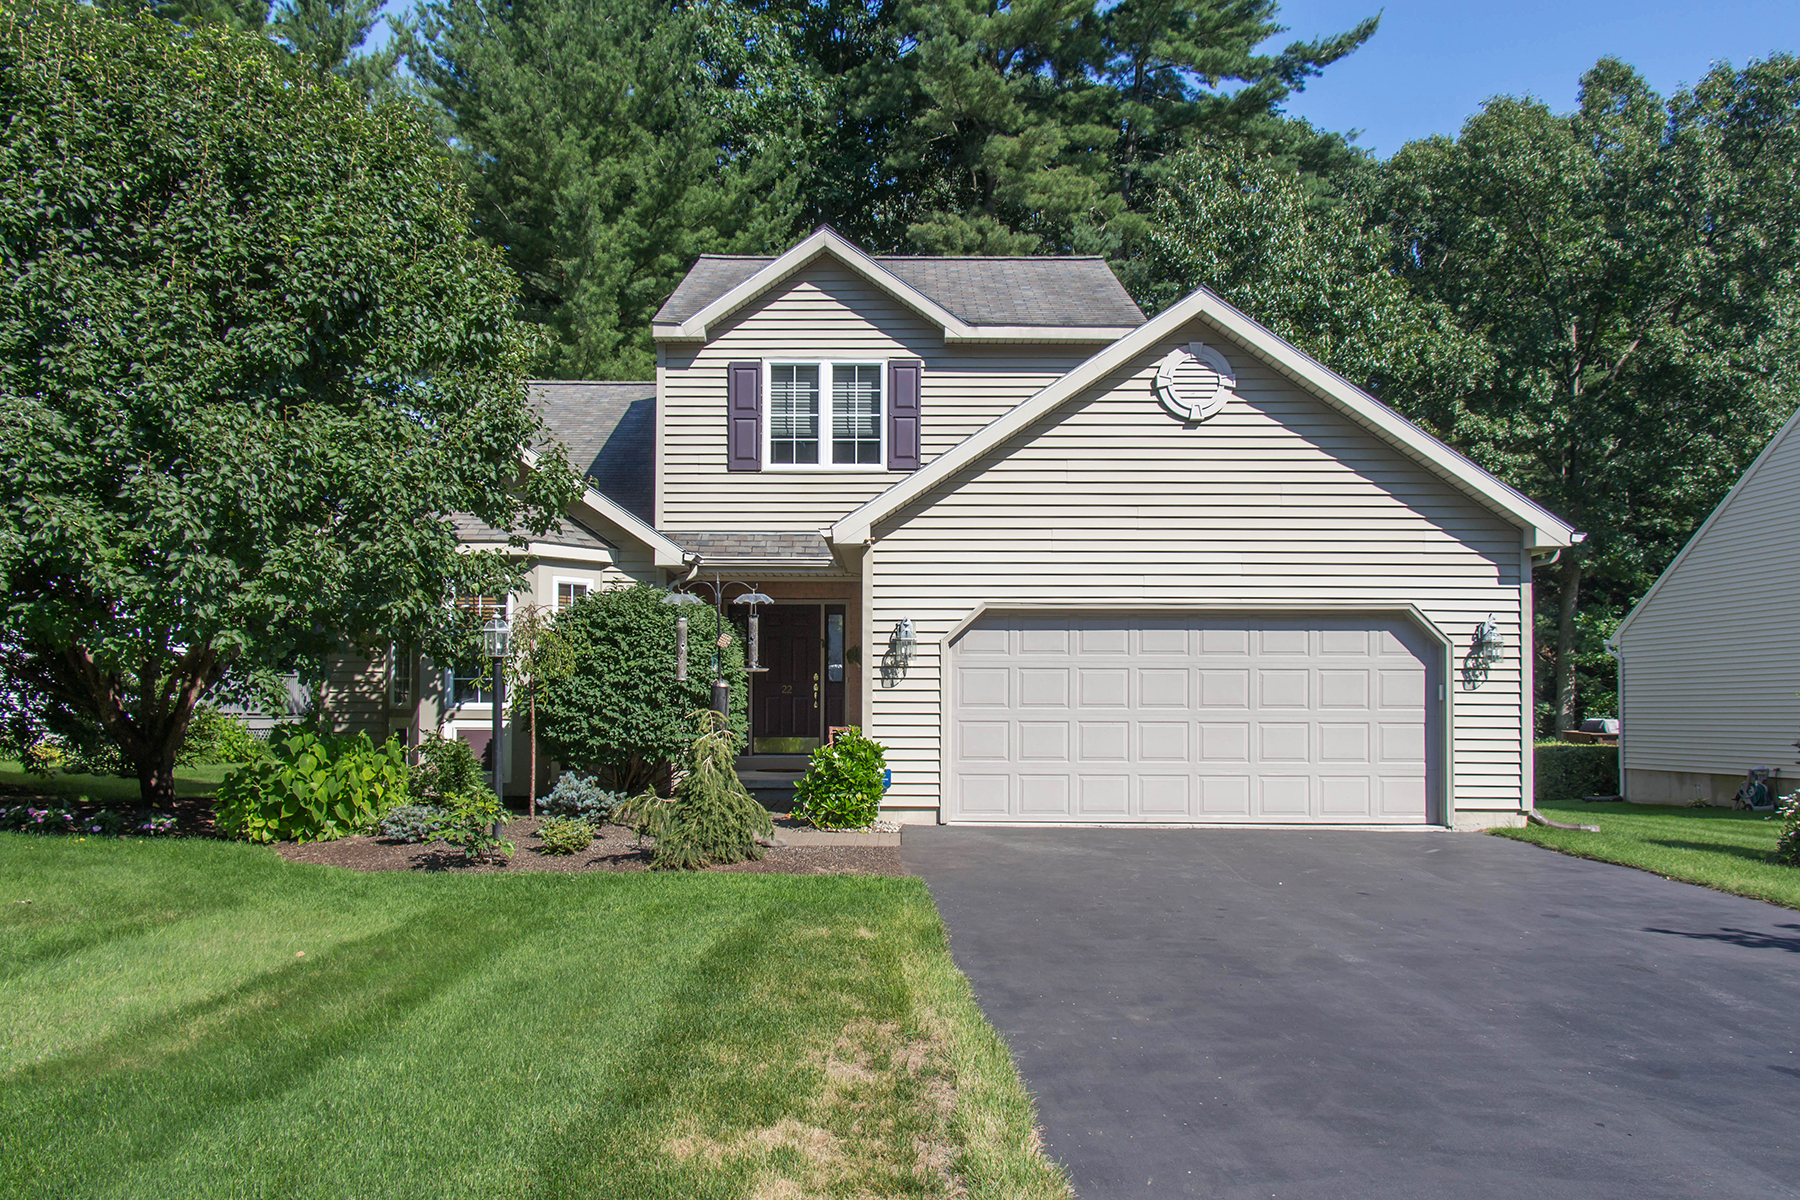 Single Family Home for Sale at Summer Wind 22 Waterview Dr Saratoga Springs, New York 12866 United States